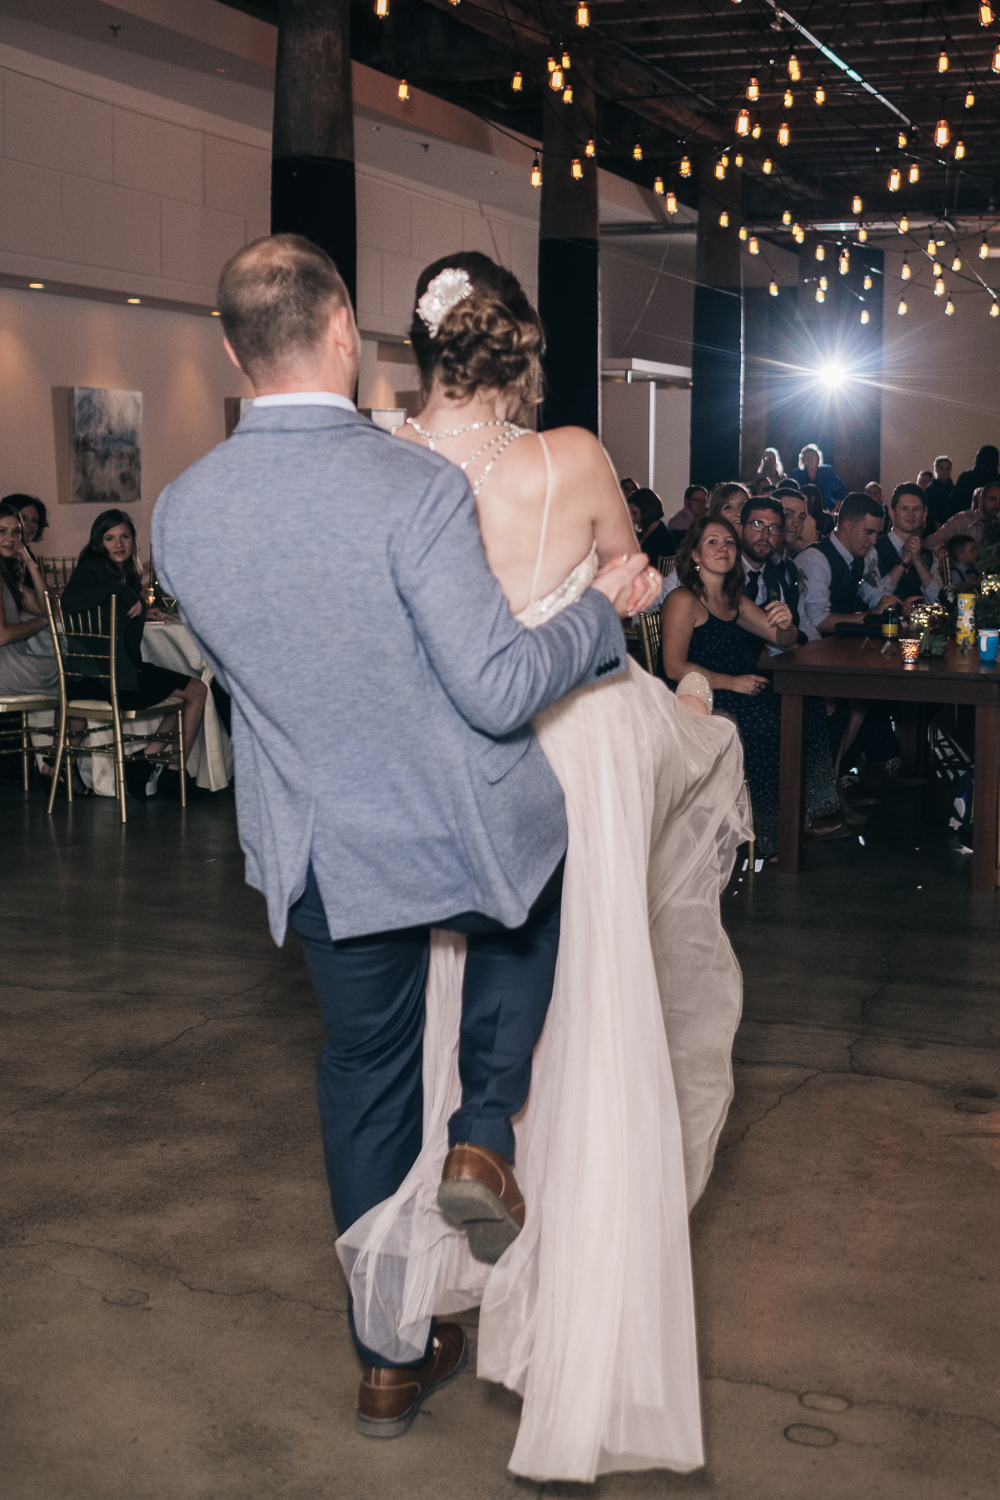 Choreographed dancing for wedding receptions is a fun way to keep your guests entertained